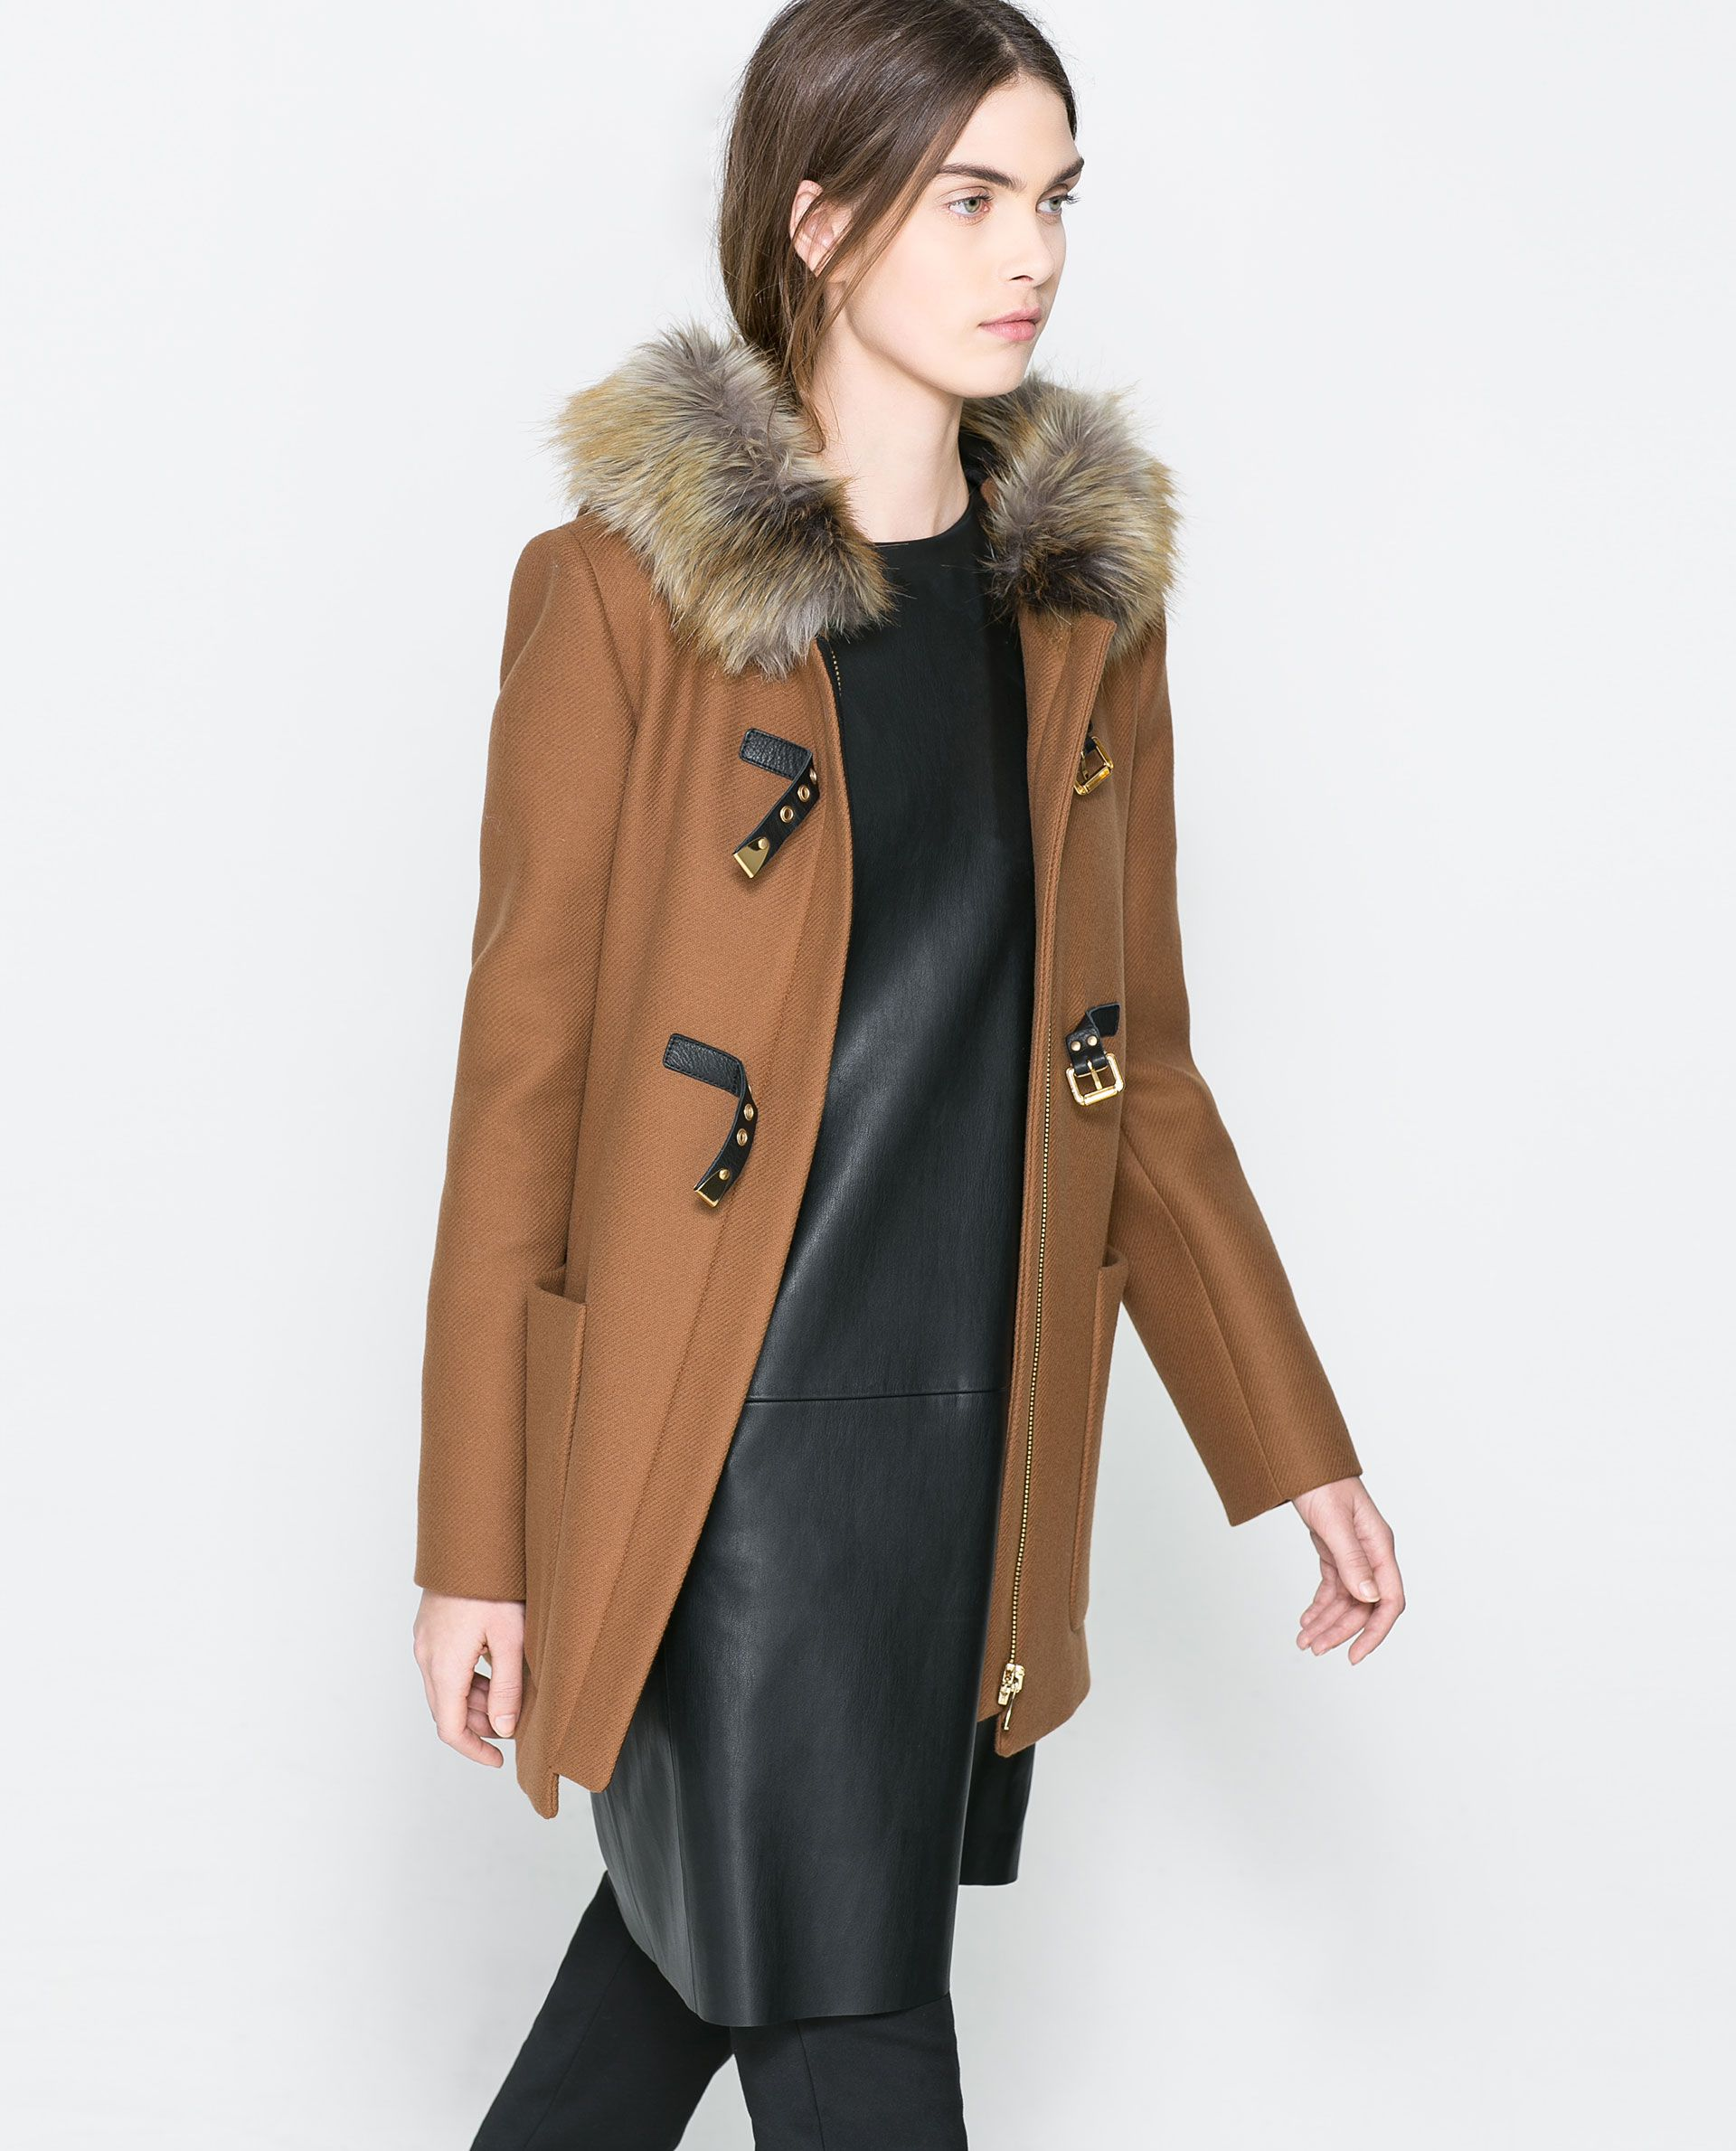 ZARA WOMAN DUFFLE COAT WITH FUR HOOD Obsessed with